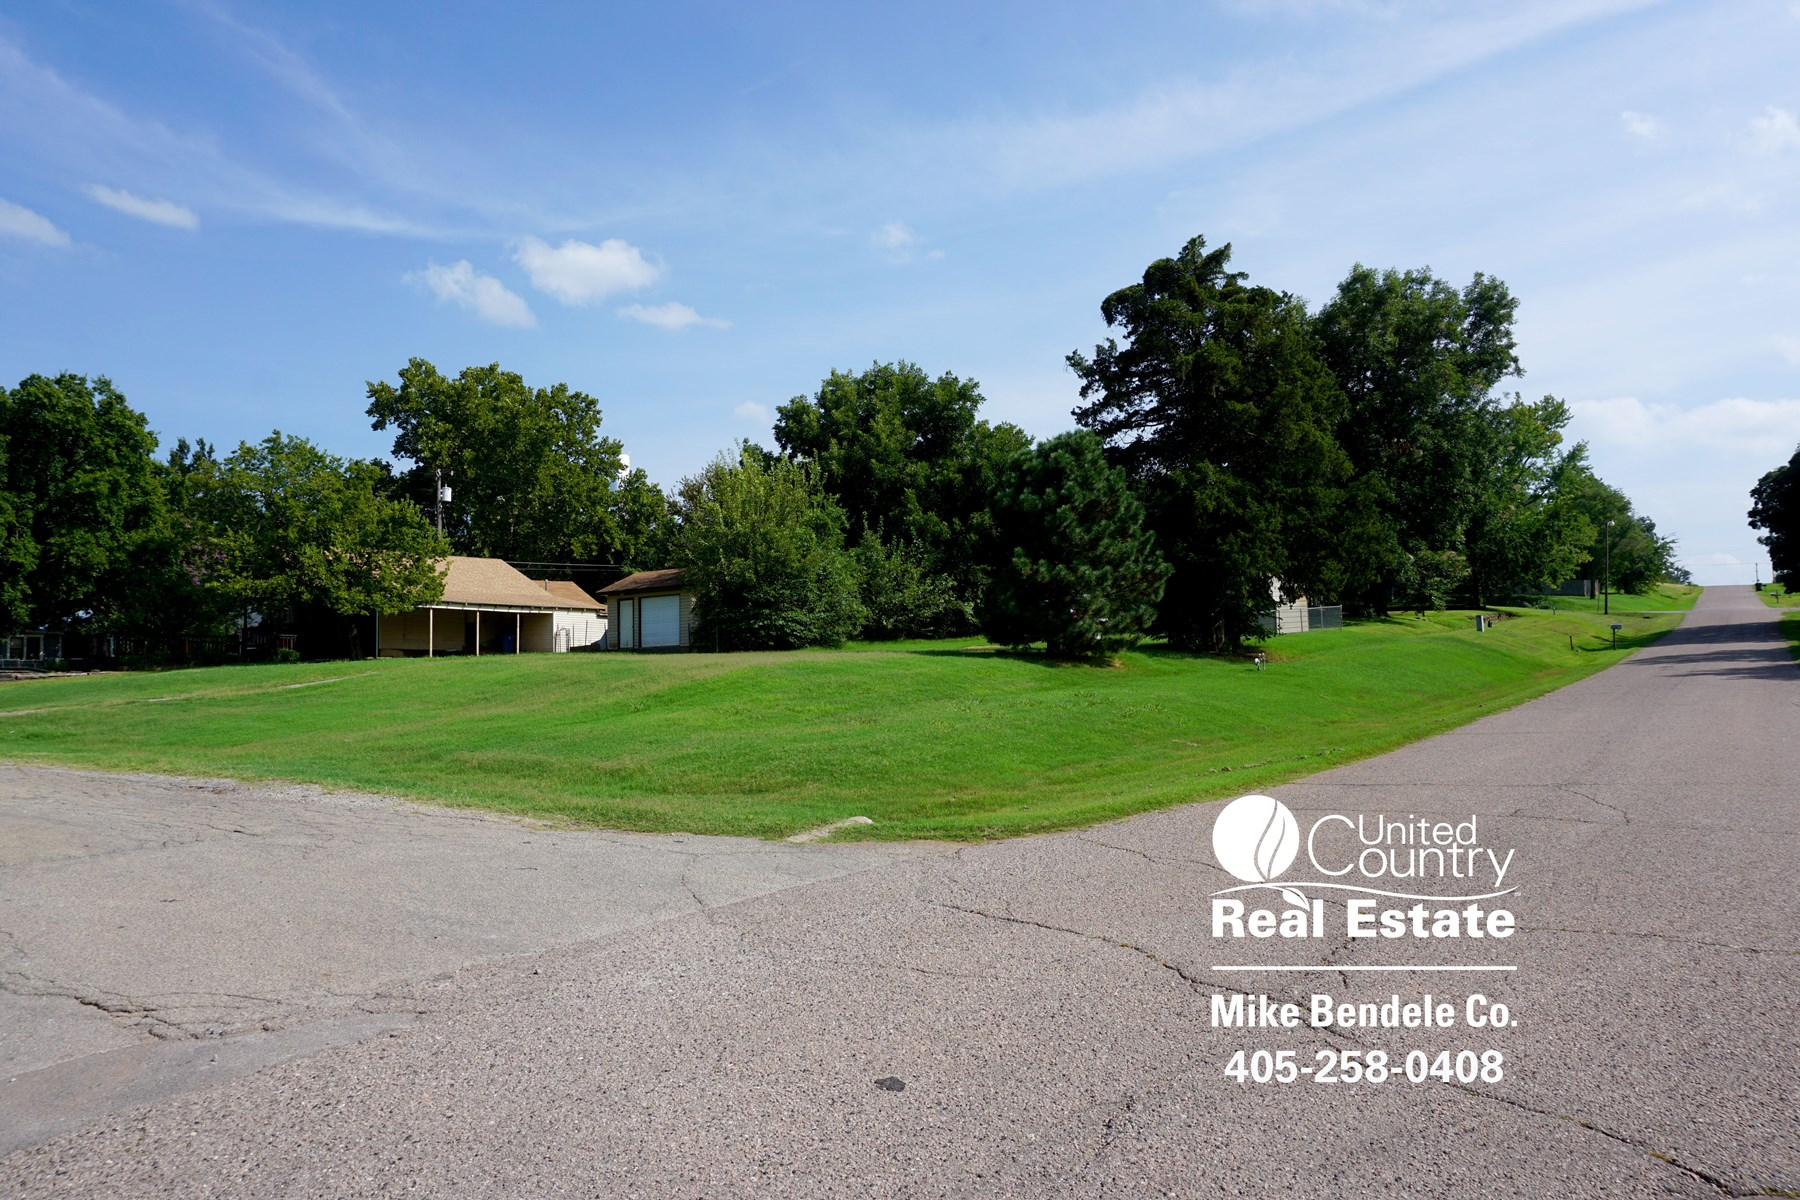 2 Lots for Sale to build on, Chandler, Central Oklahoma